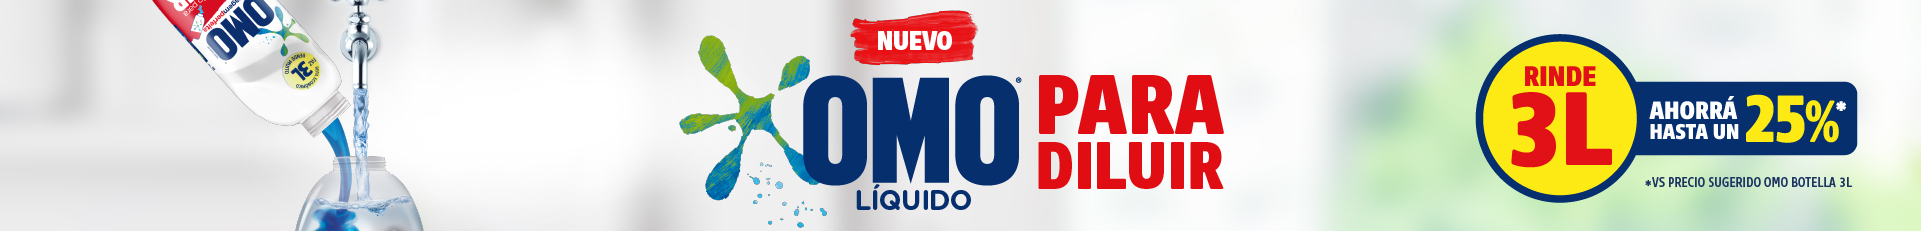 /producto_omo?utm_source=WEB&utm_medium=banner%20catalogo%20superior&utm_campaign=omo